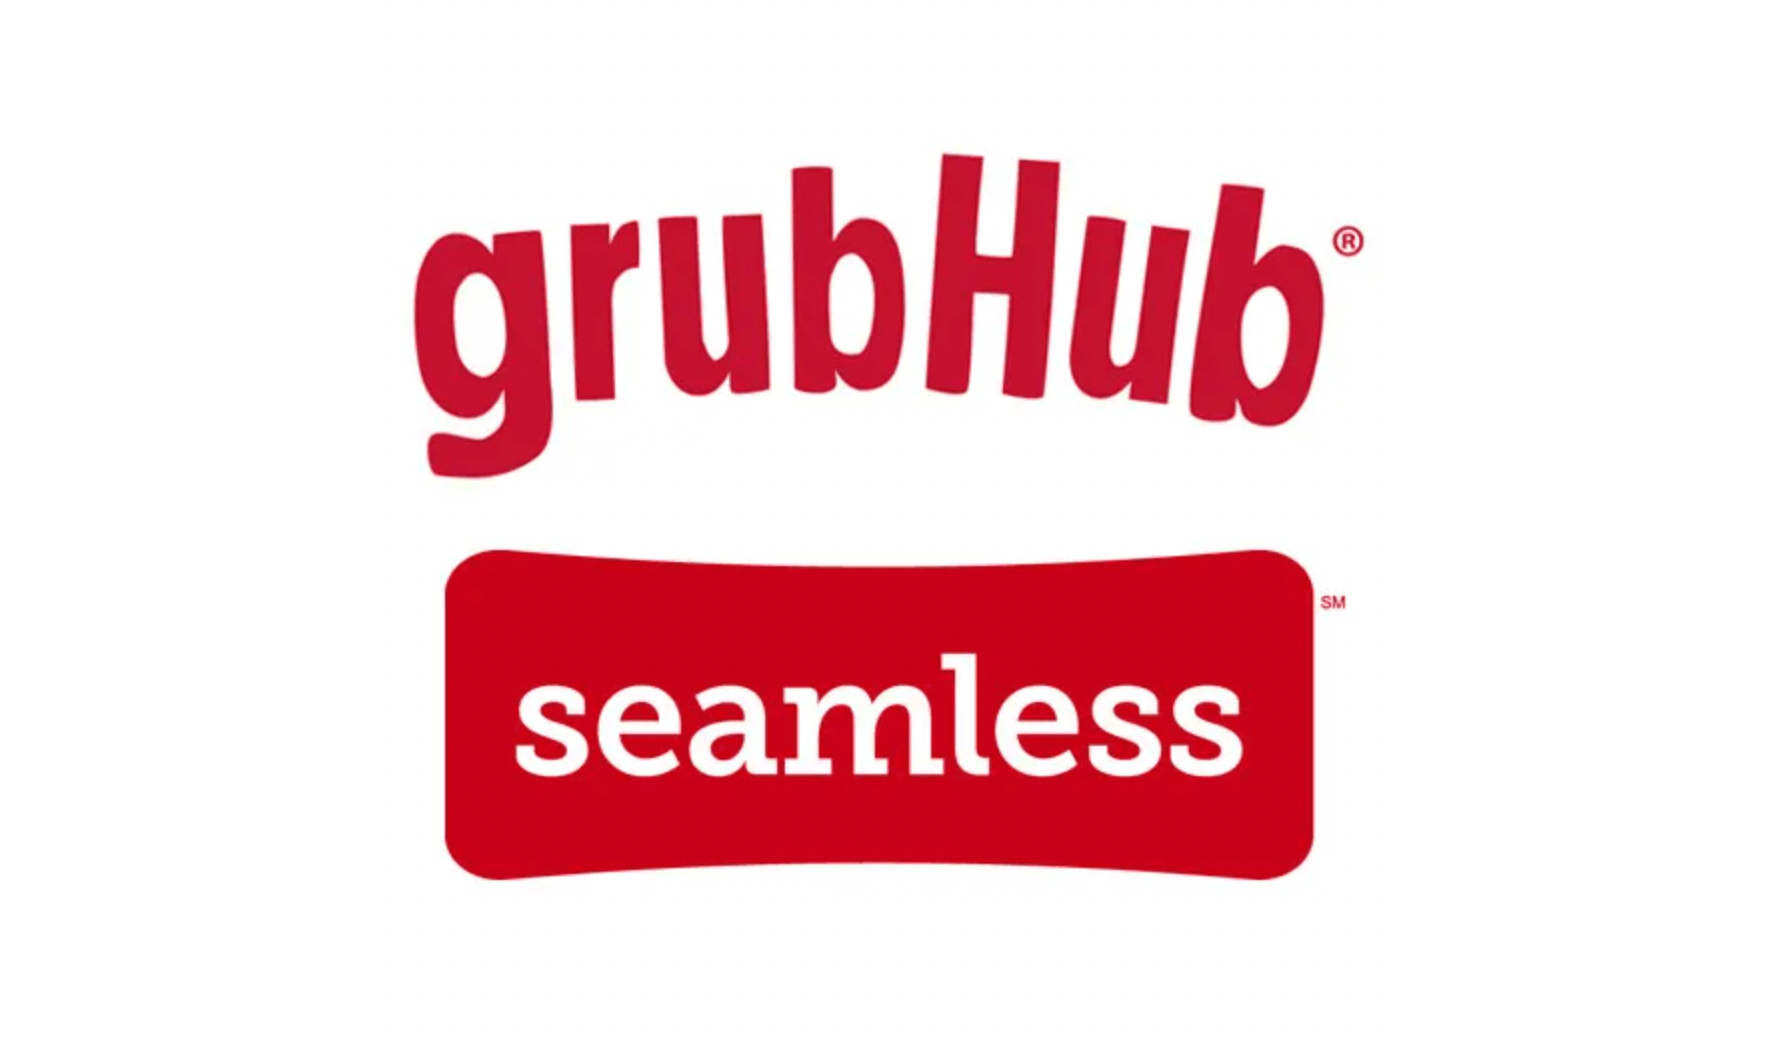 Seamless/GrubHub: 5 Restaurants & 1 Address and 1 Phone number